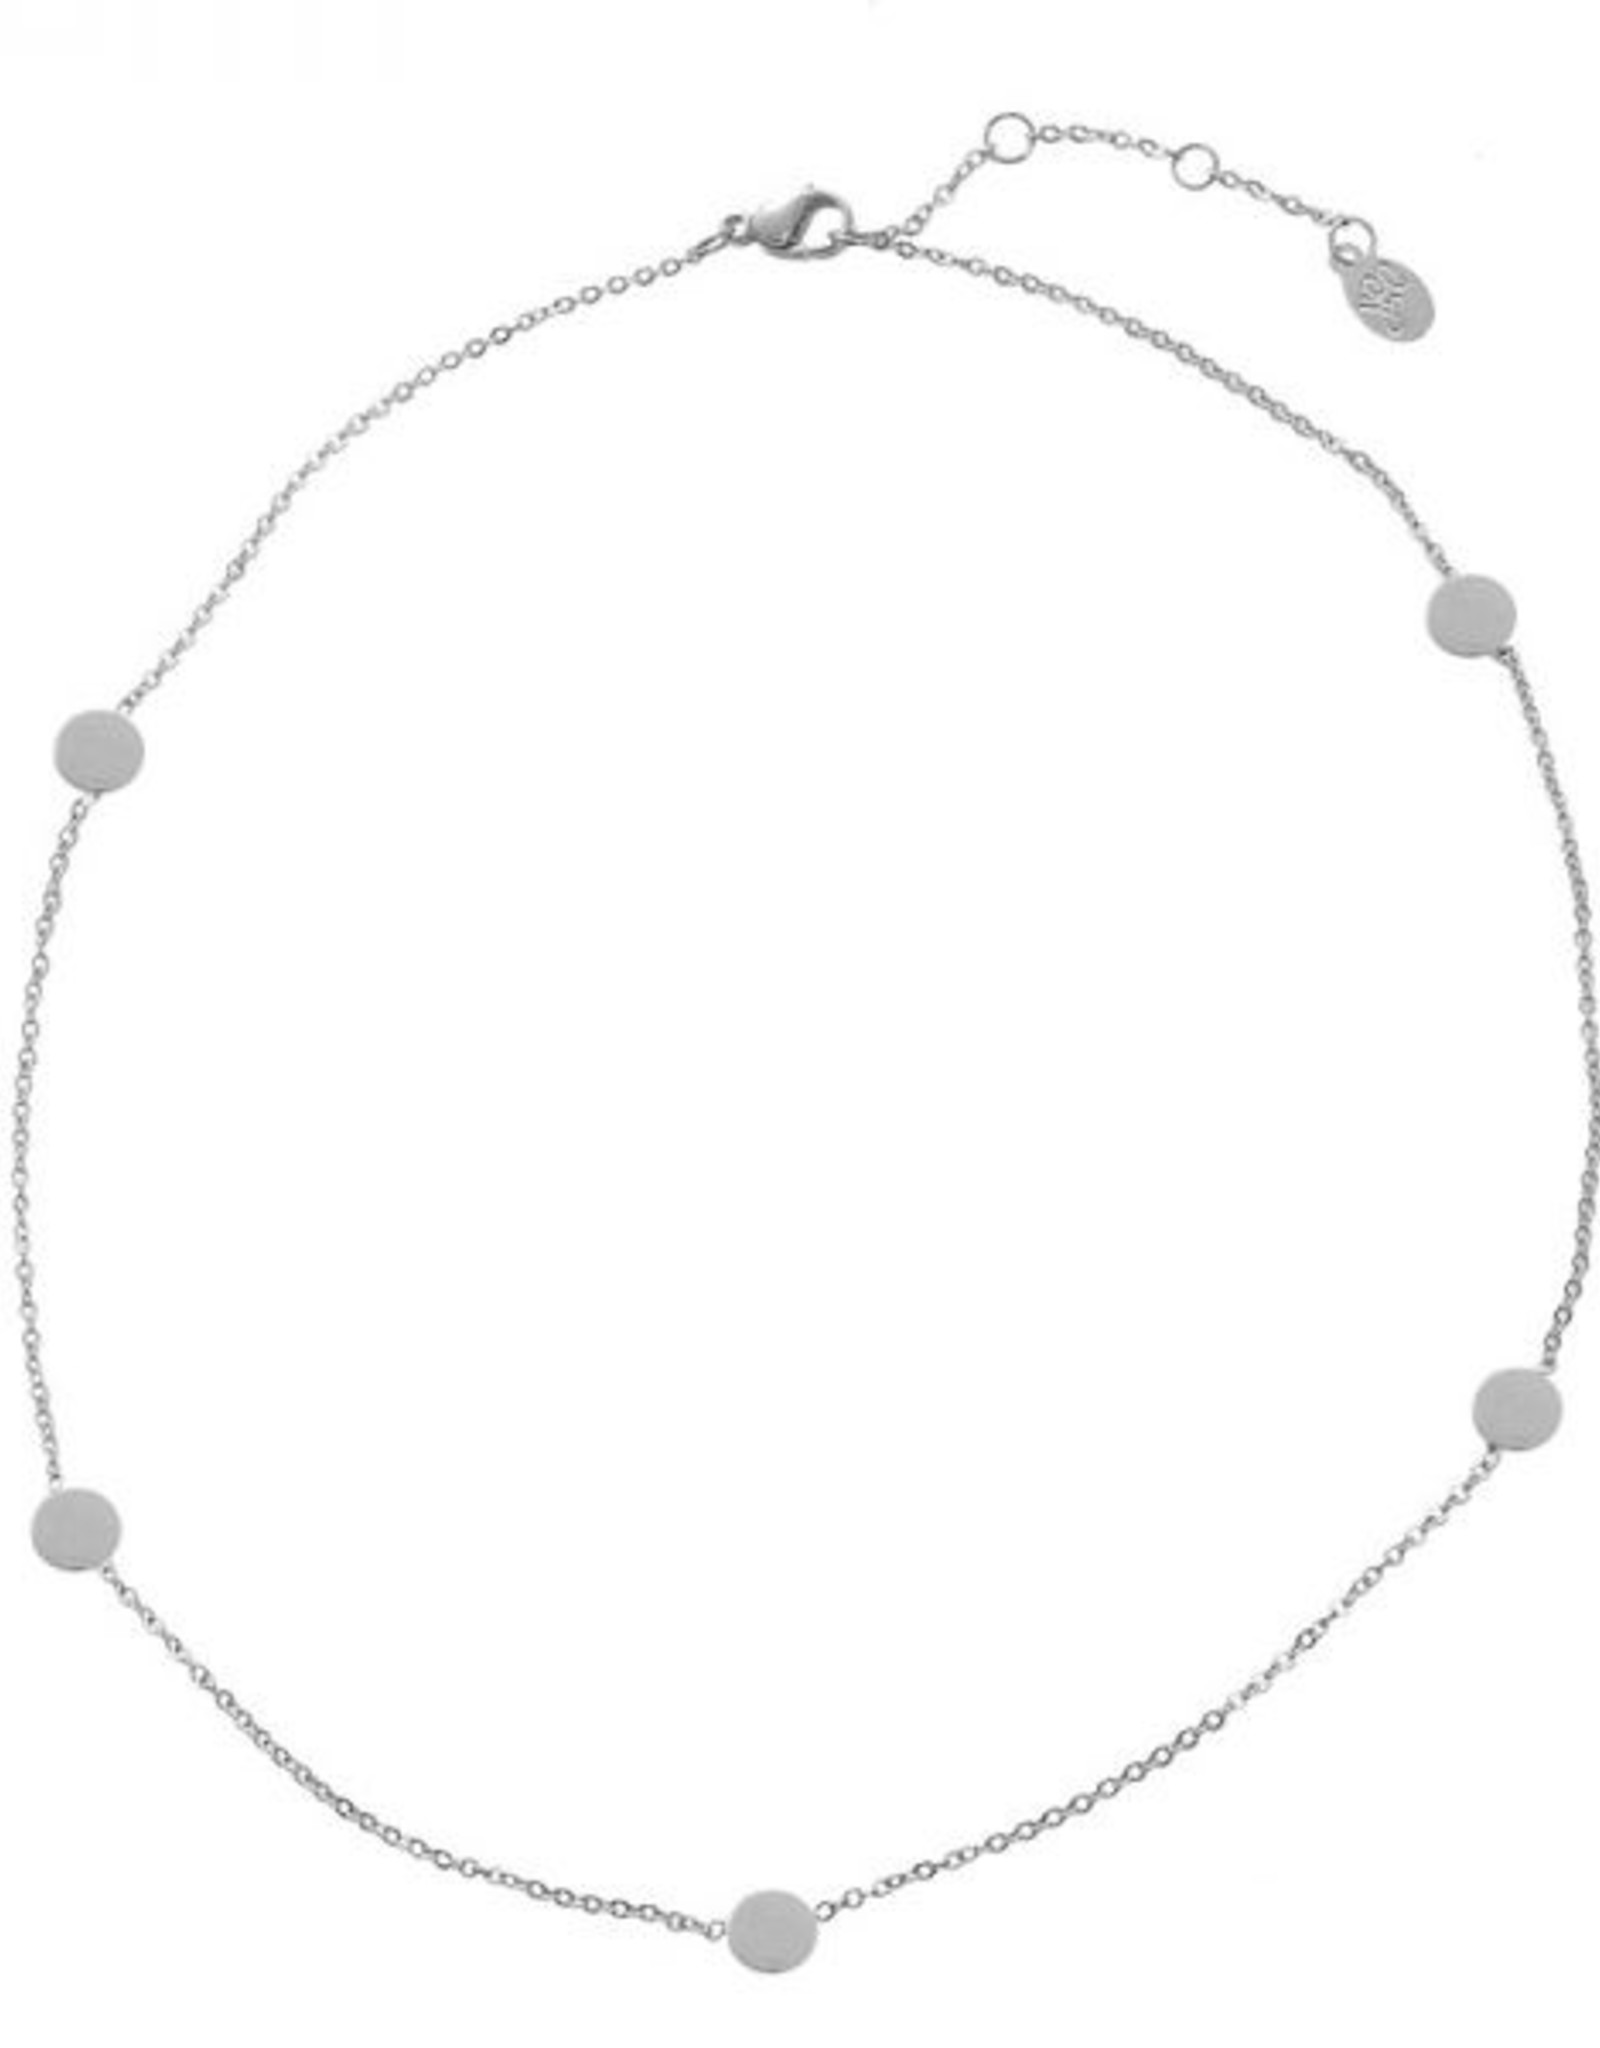 Make My Day MMD-Necklace Short Silver